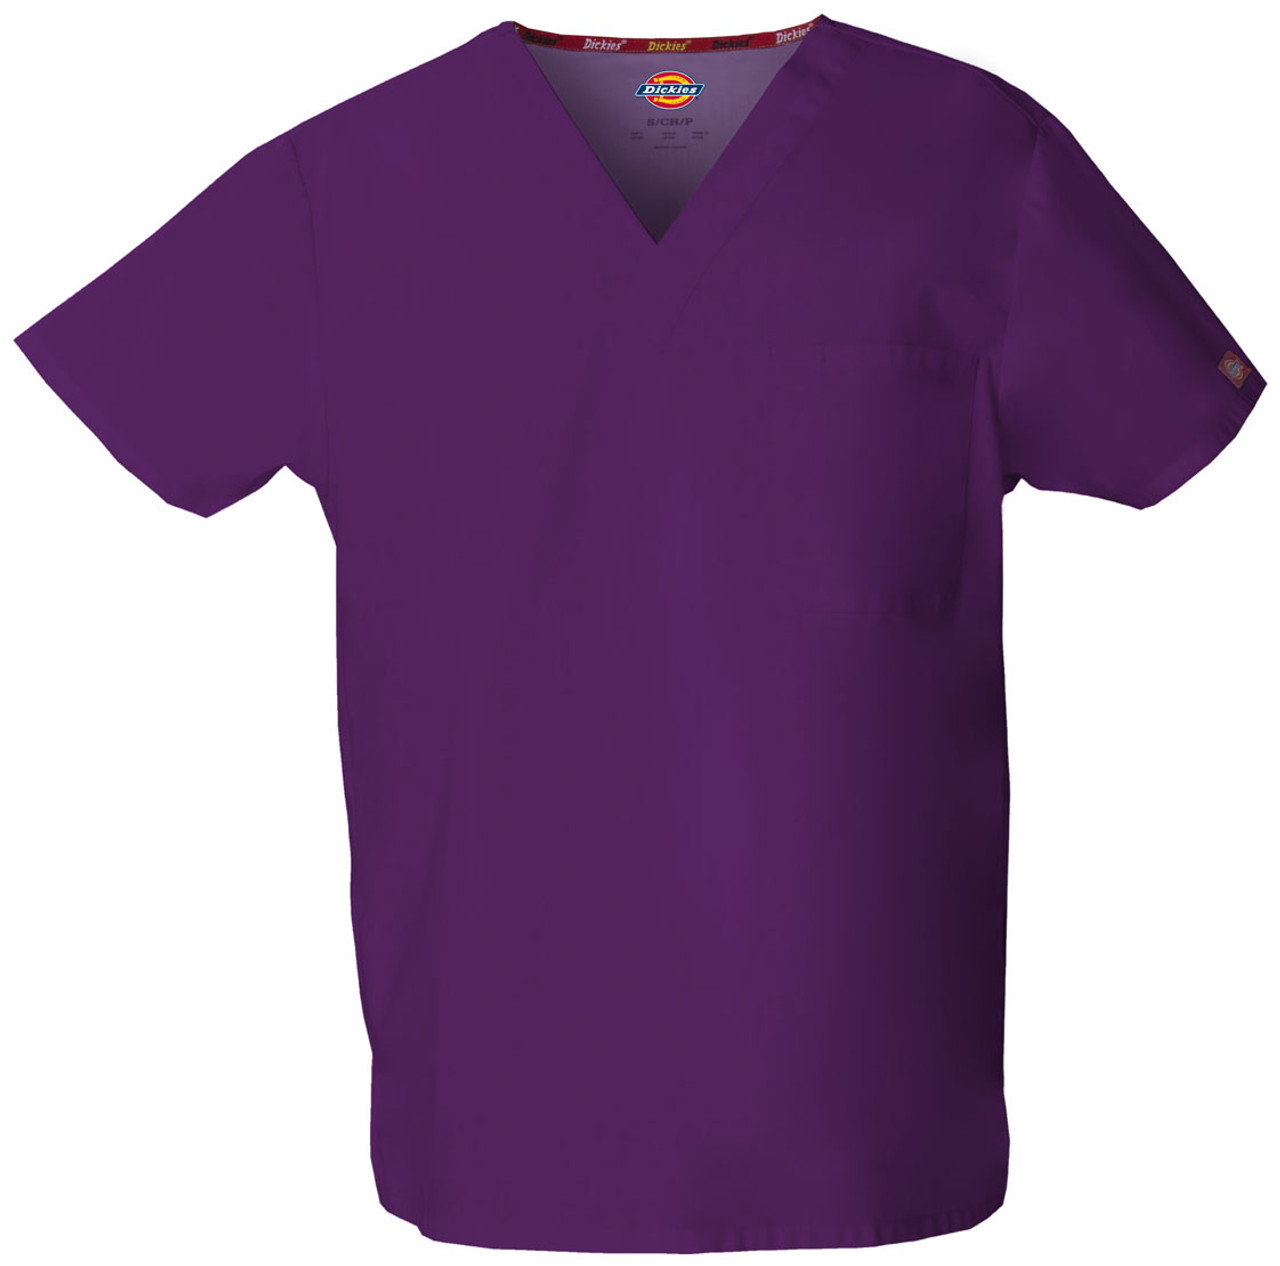 (83706) Dickies EDS Signature Scrubs - 83706 Unisex V-Neck Top